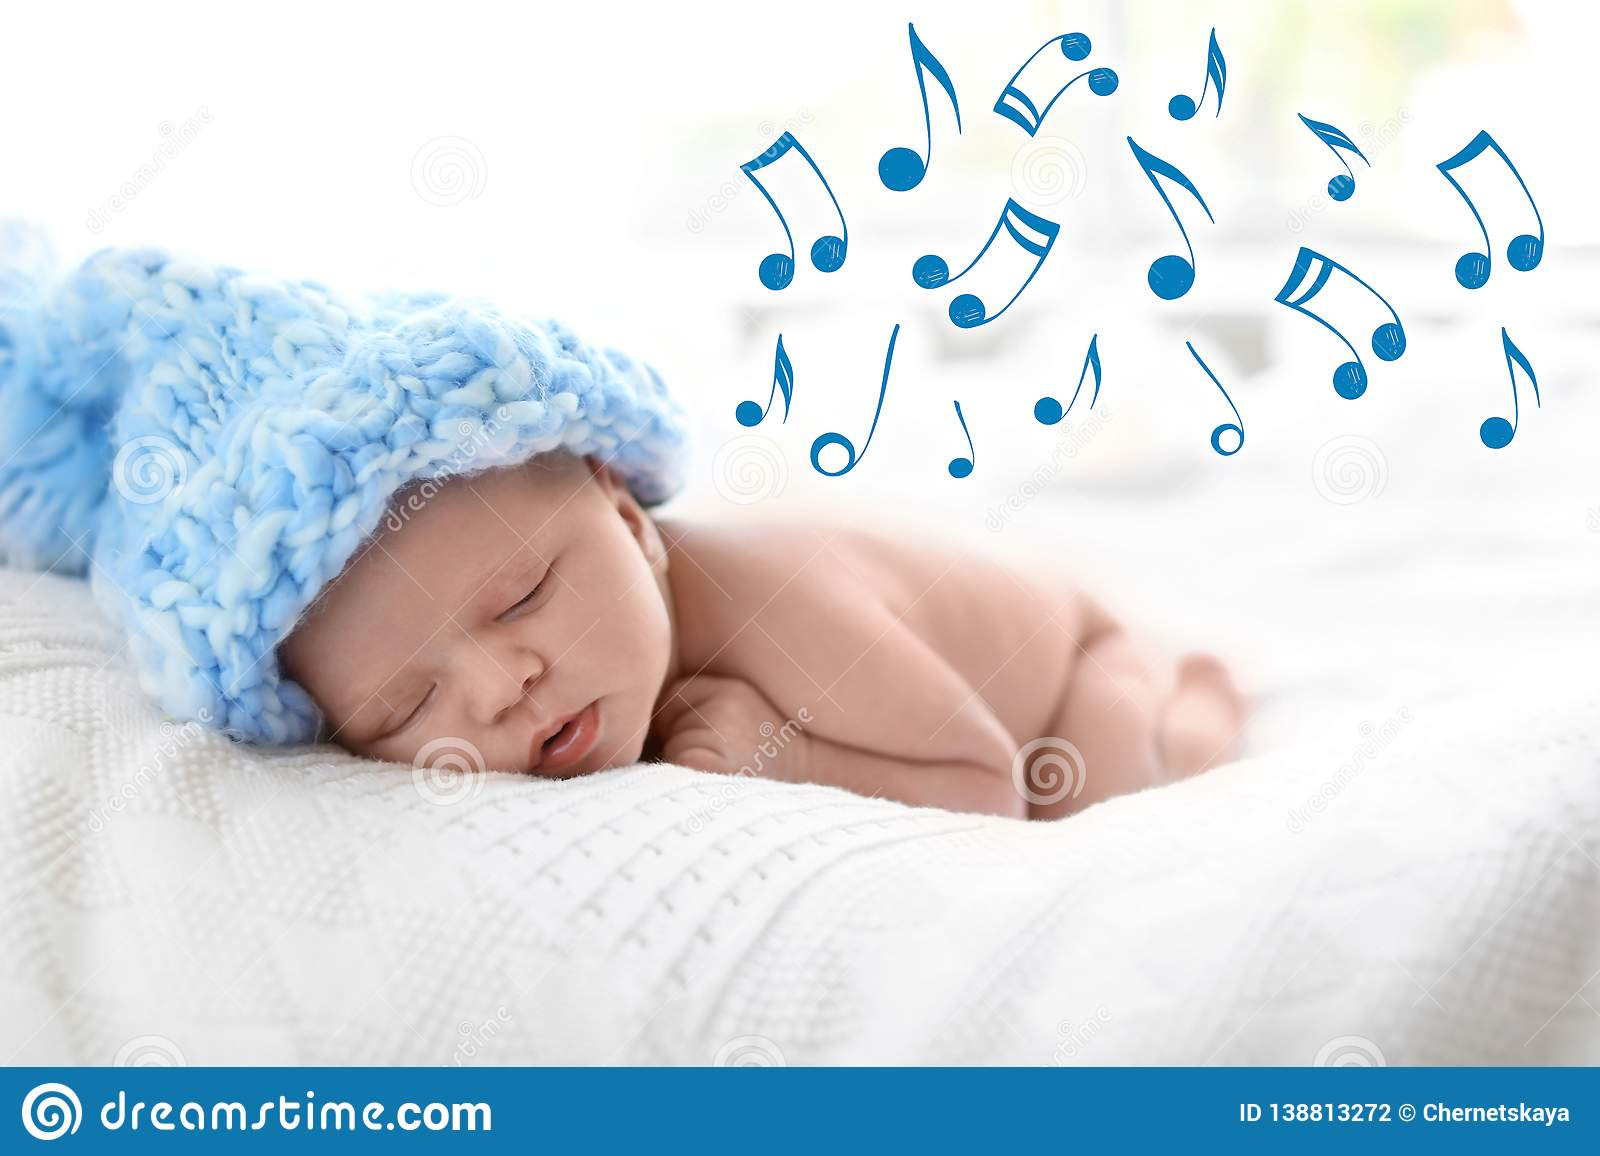 Cute newborn baby in knitted hat sleeping on bed and flying music notes.